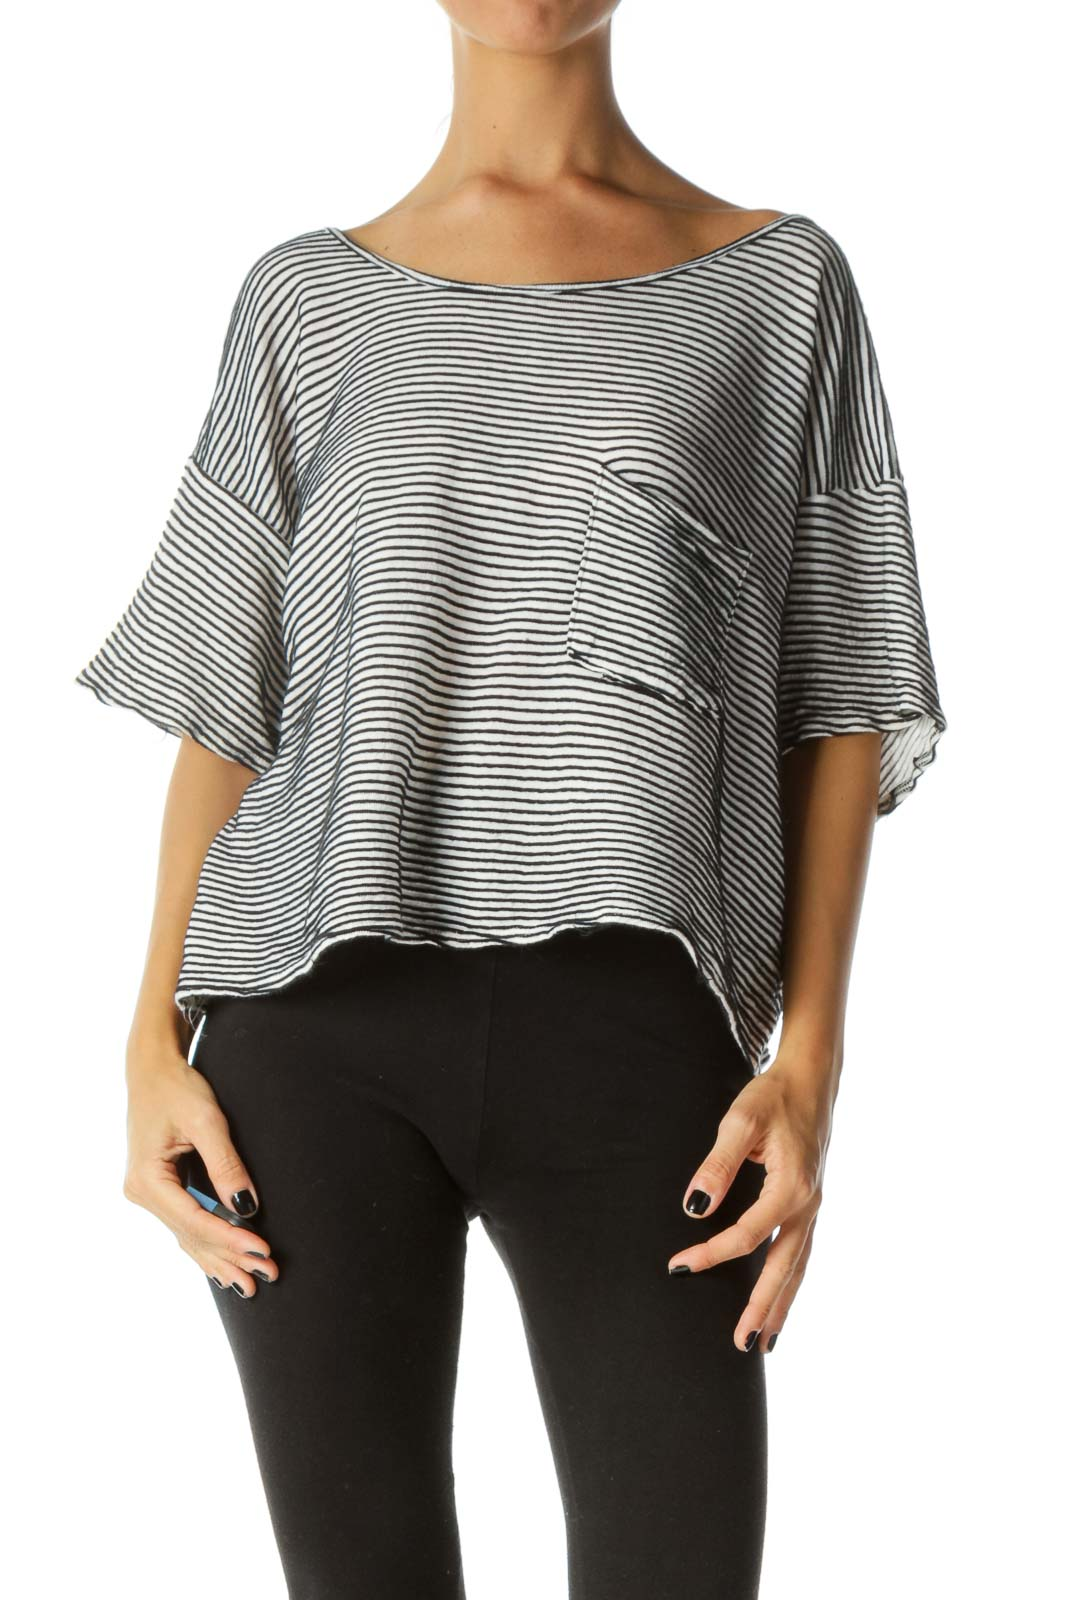 Black White 100% Cotton One-Pocket Striped Short Sleeve Knit Top Front